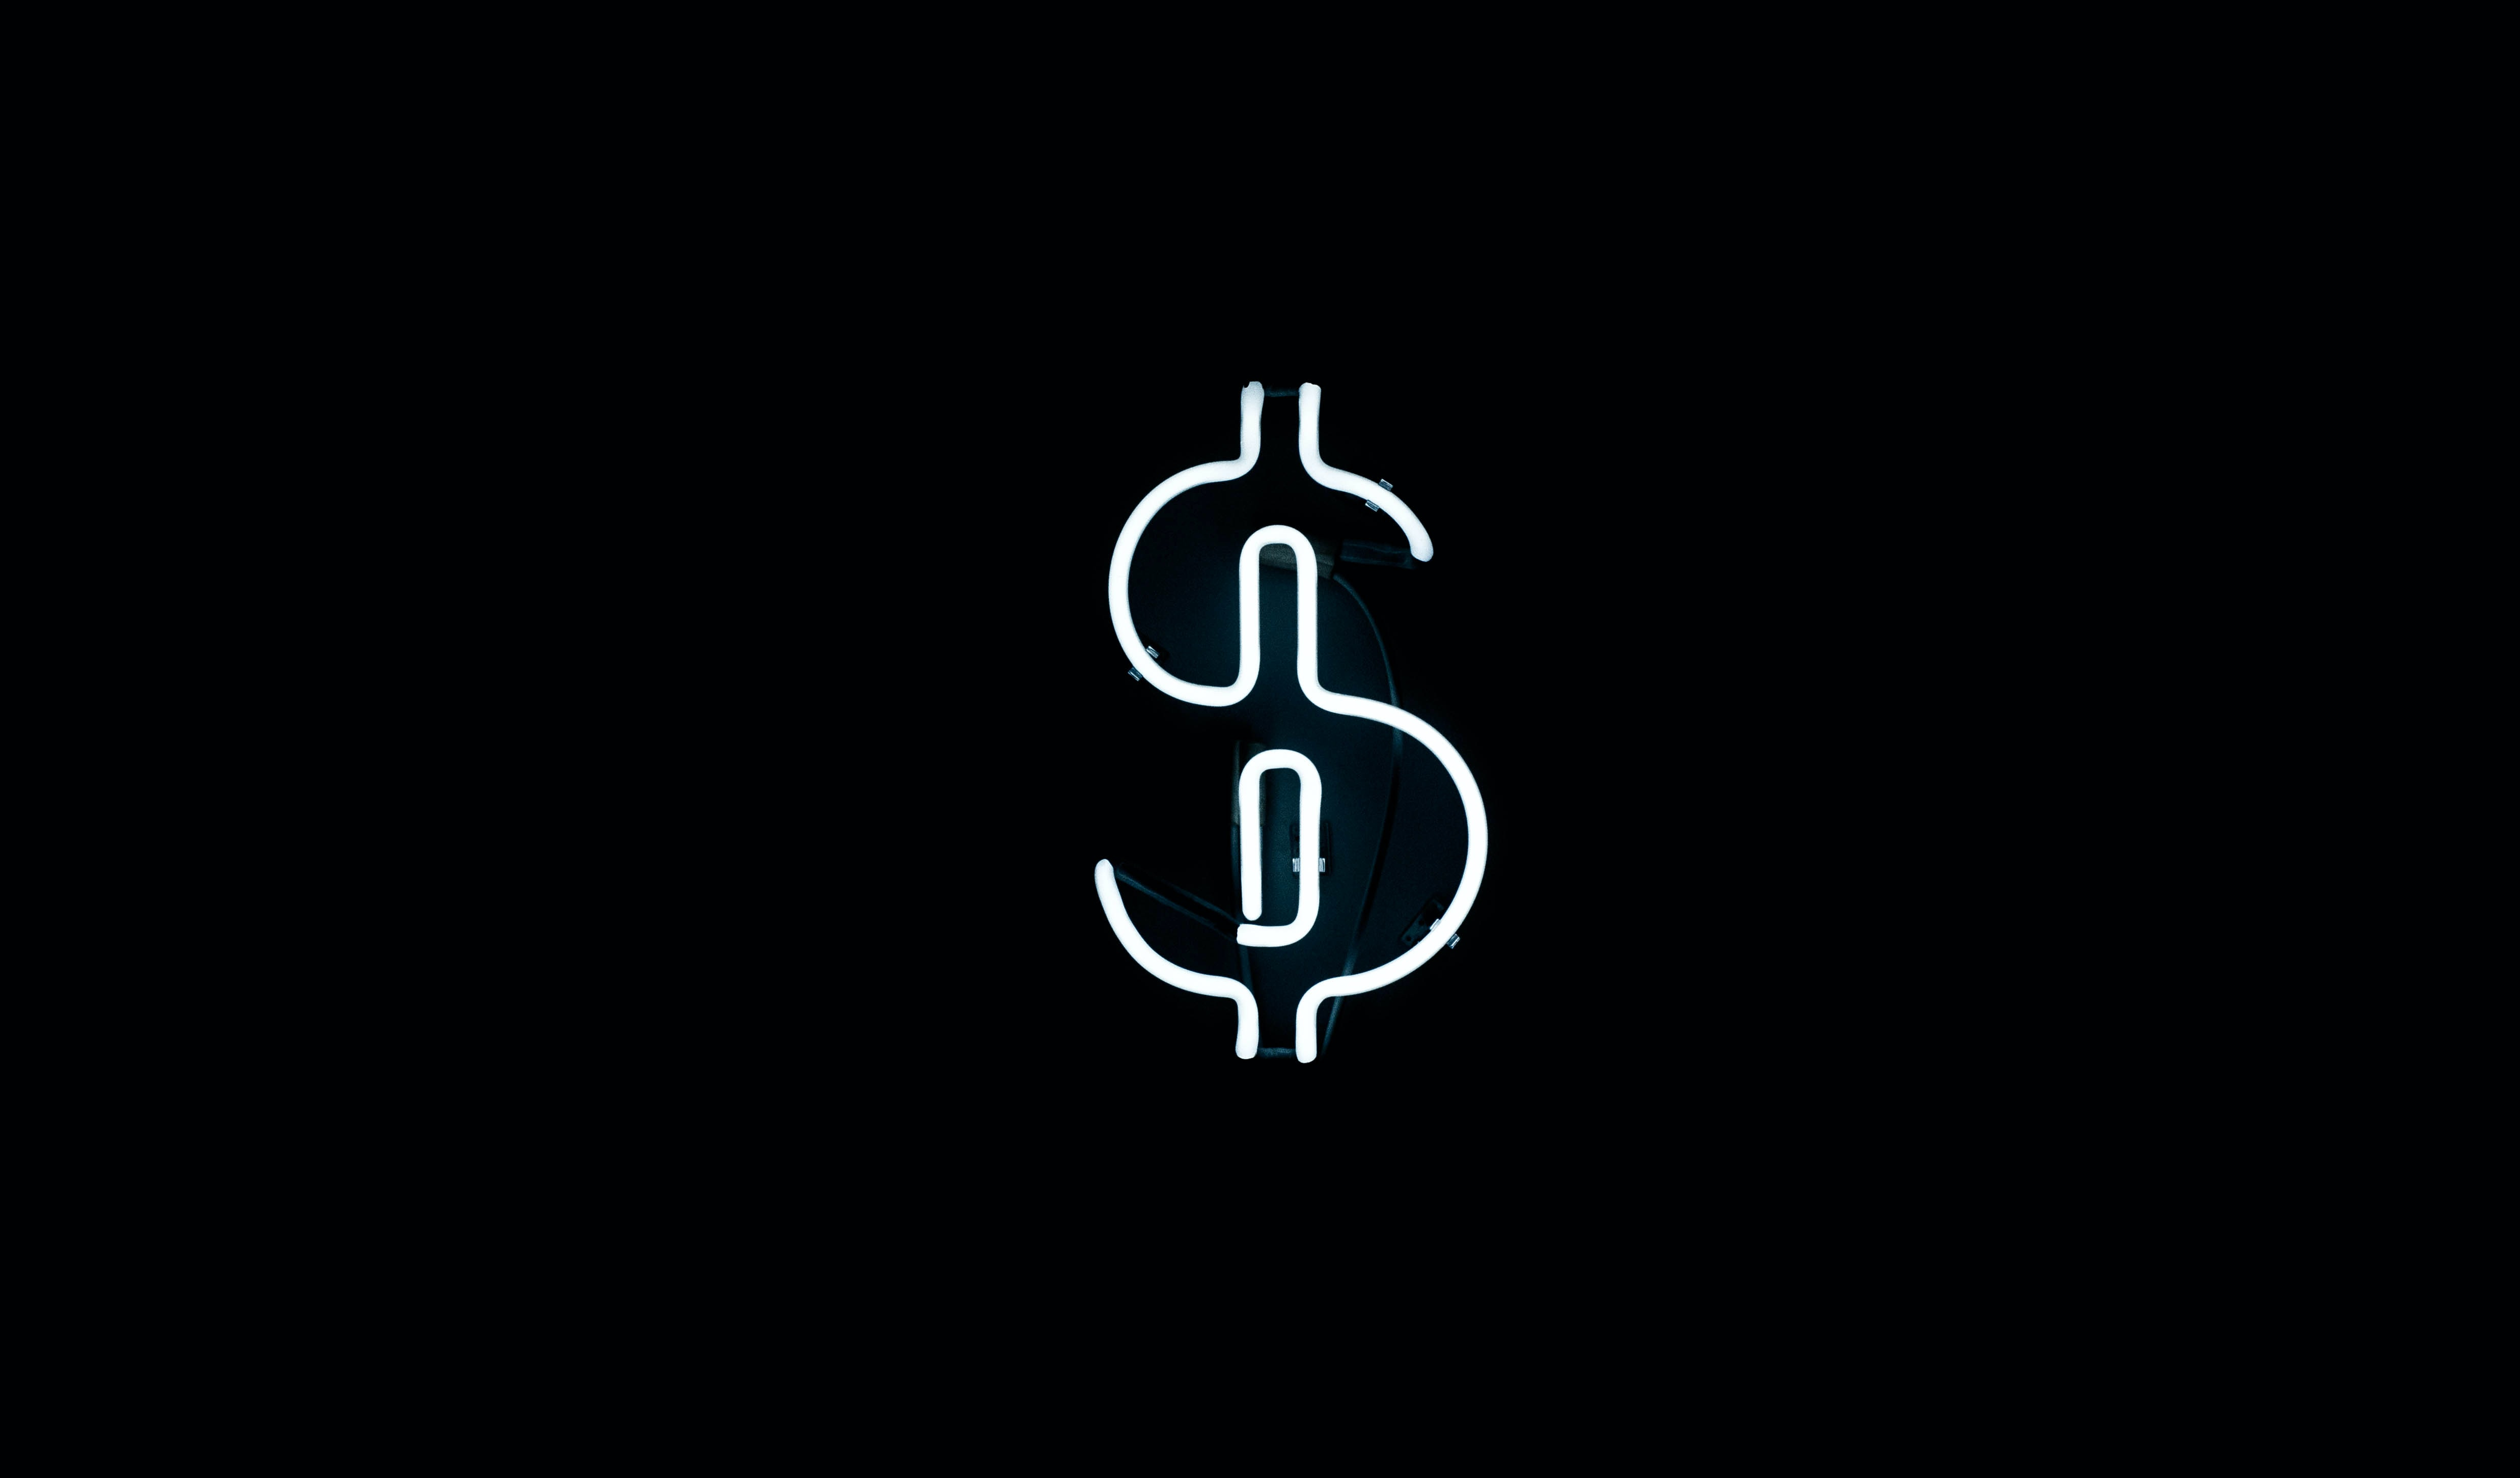 A white neon in the shape of the dollar sign at night